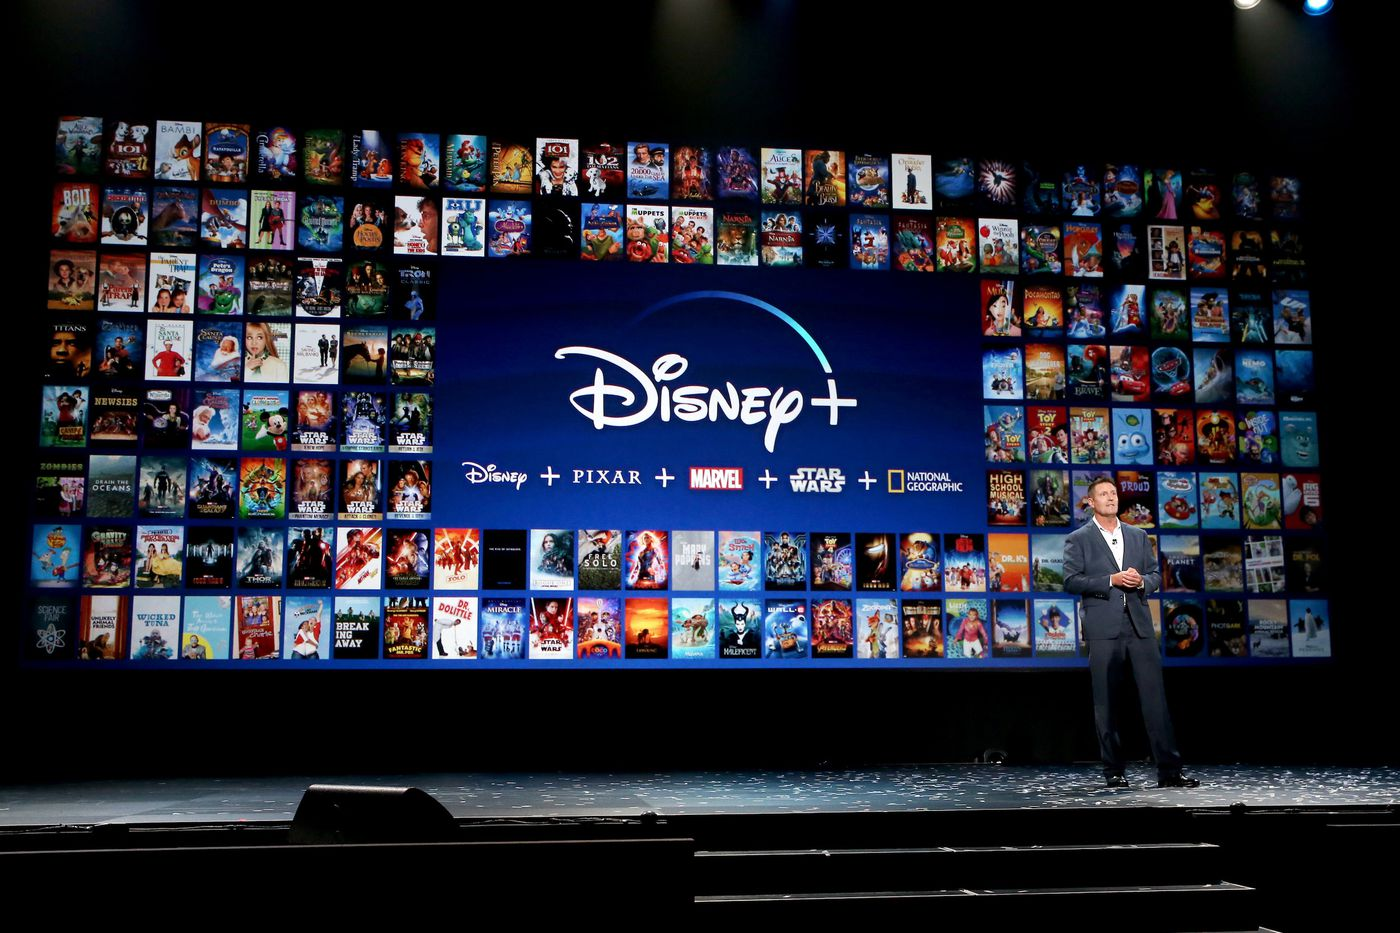 Movies are quietly disappearing from Disney Plus - Polygon